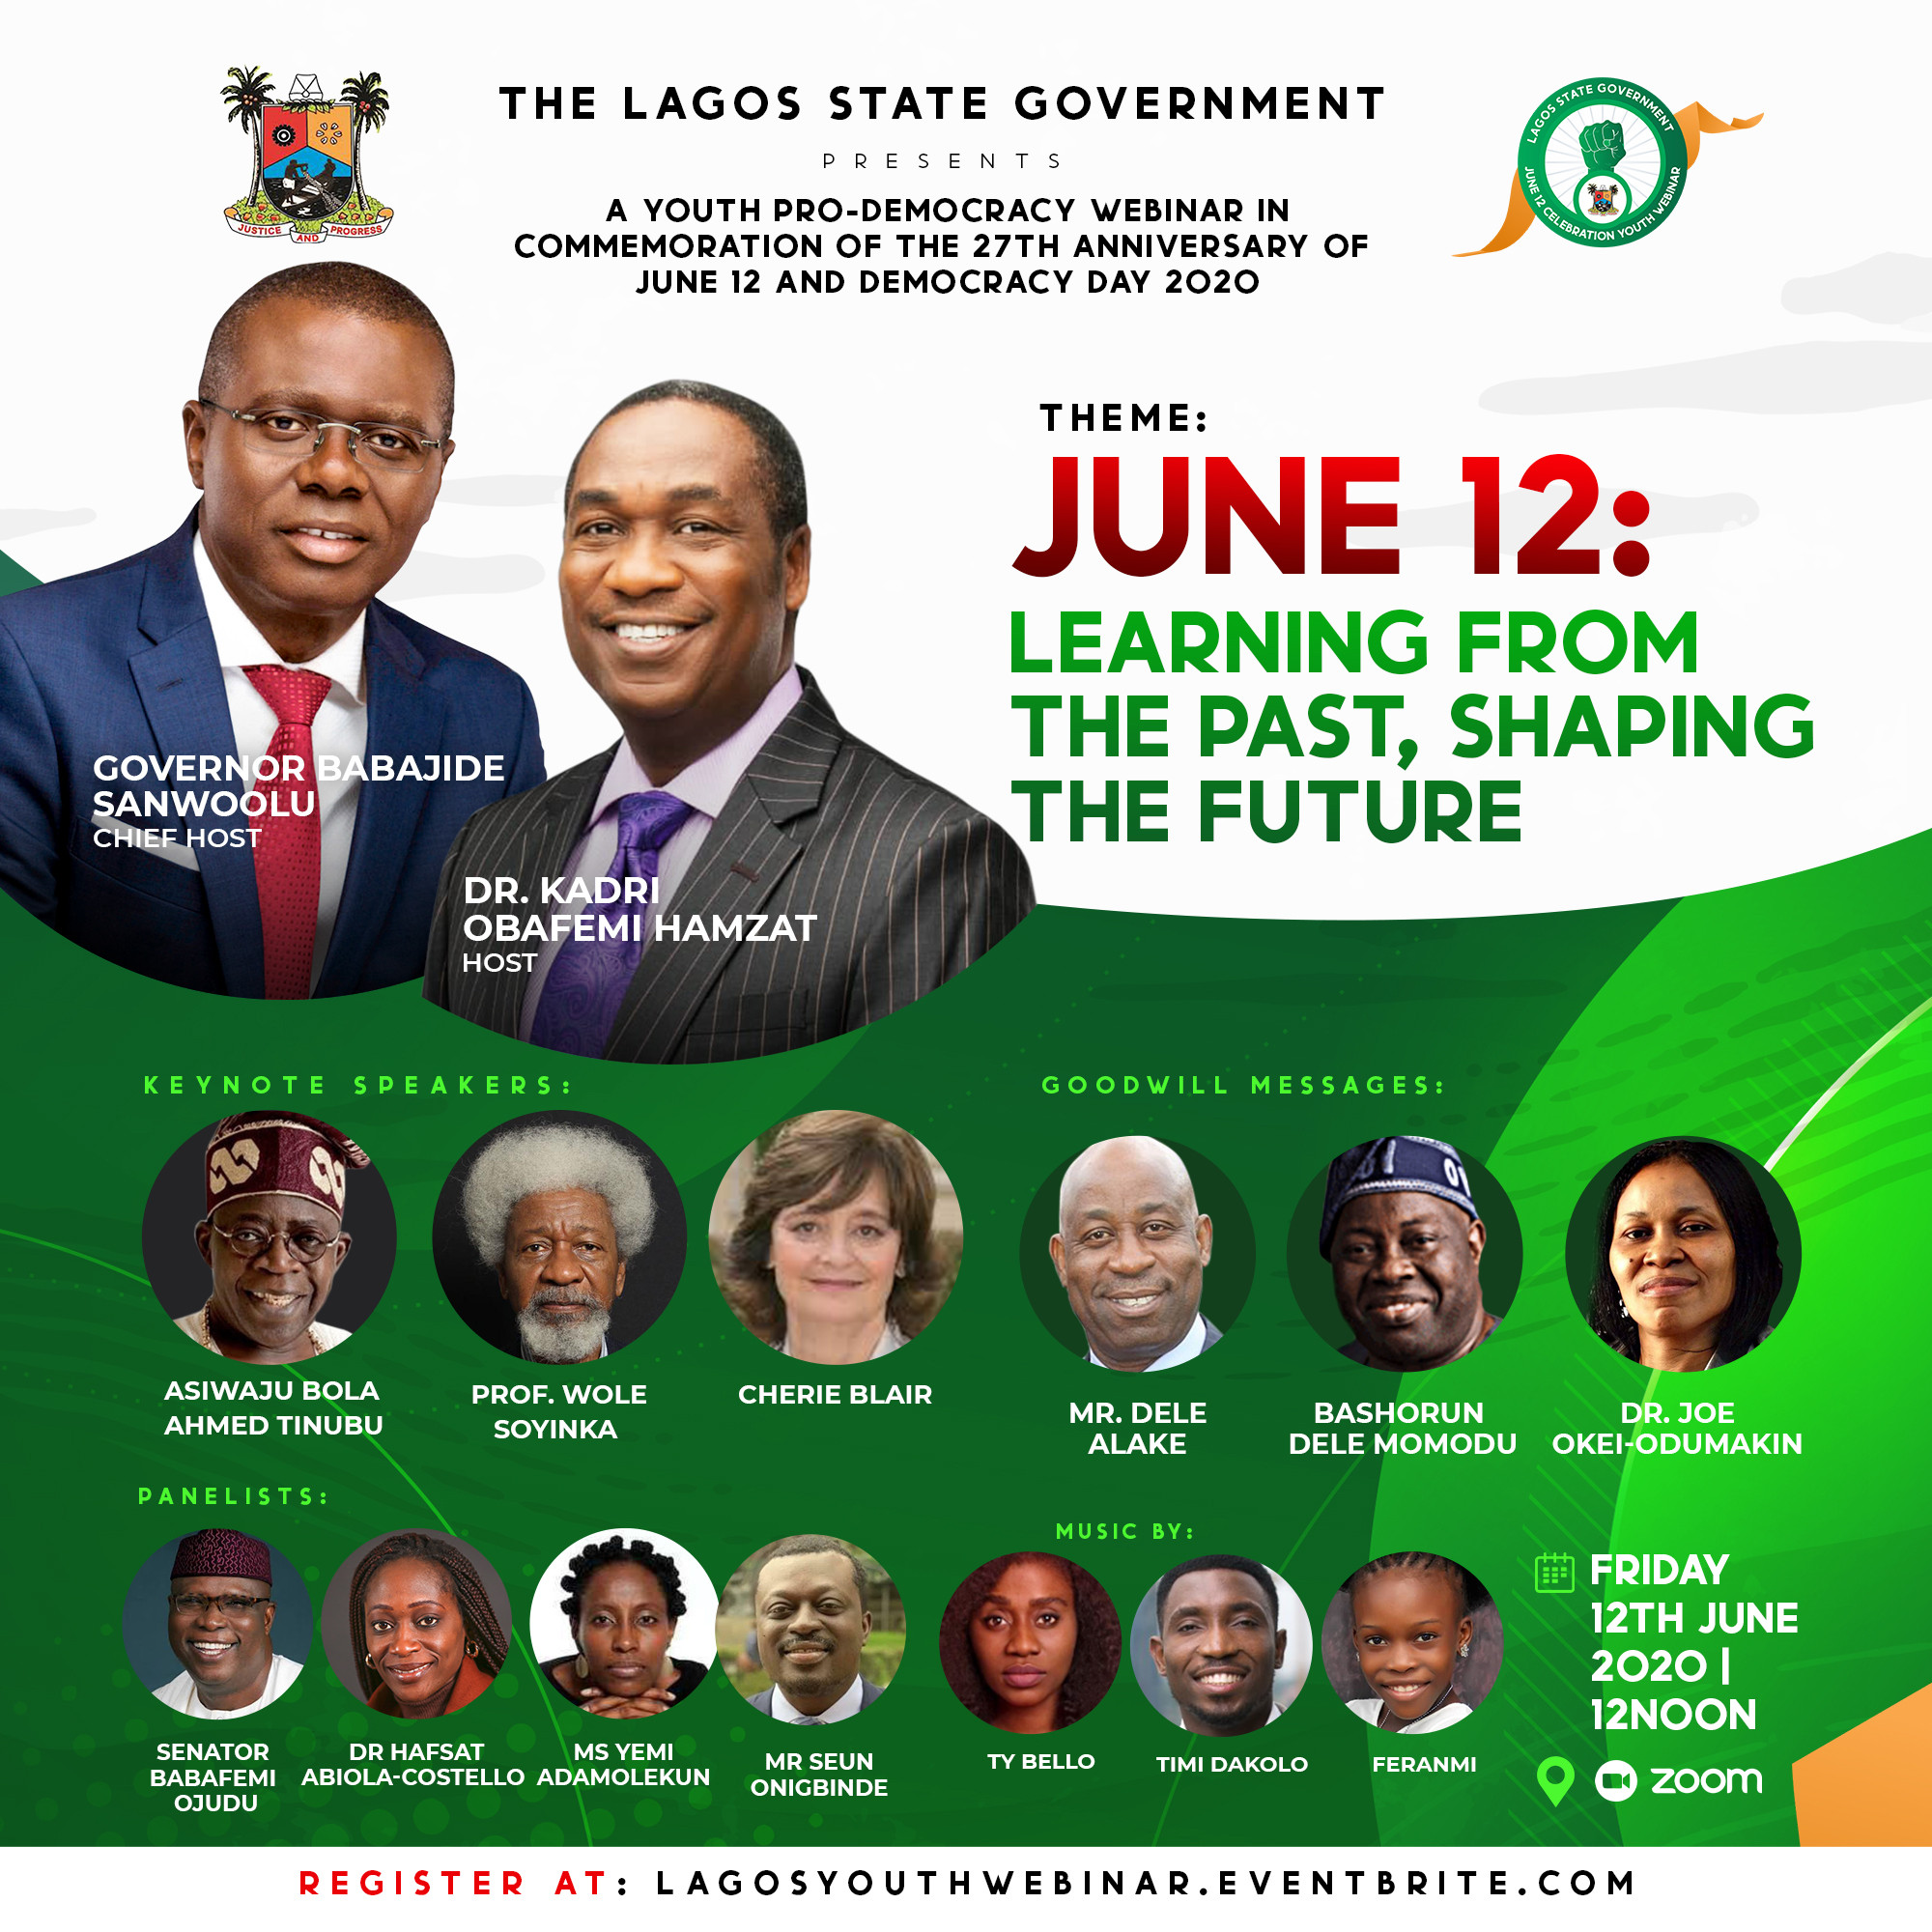 , Invitation: Sanwoolu to host Tinubu, Soyinka, Cherie Blair, Momodu, Odumakin on June 12 Commemoration Webinar for Lagos Youth, All9ja, All9ja